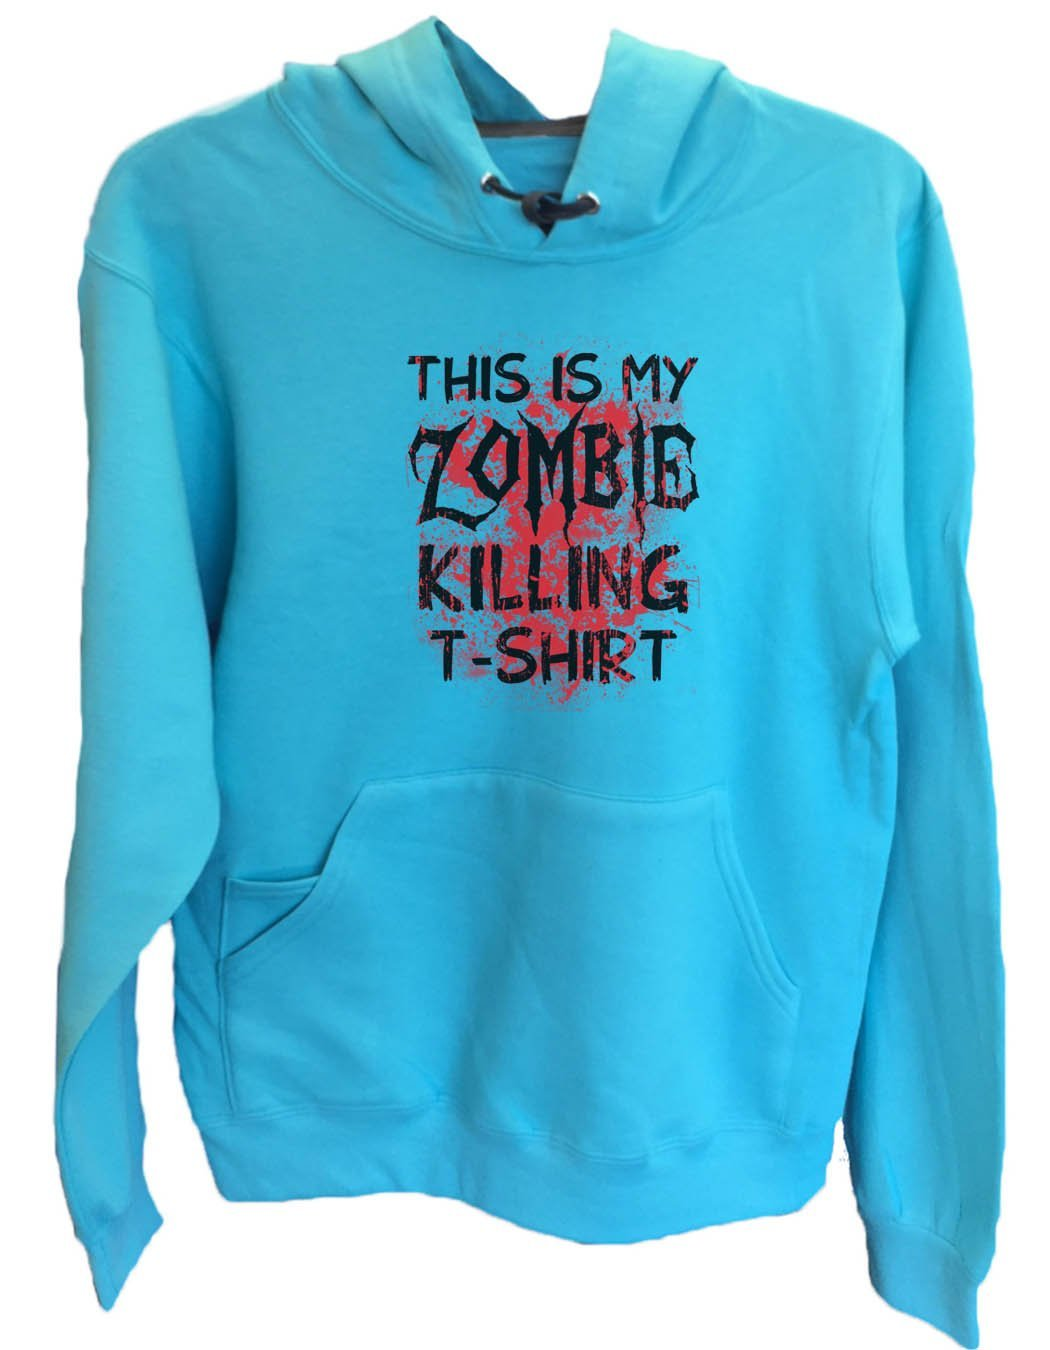 UNISEX HOODIE - This Is My Zombie Killing T-Shirt - FUNNY MENS AND WOMENS HOODED SWEATSHIRTS - 2312 Funny Shirt Small / Turquoise